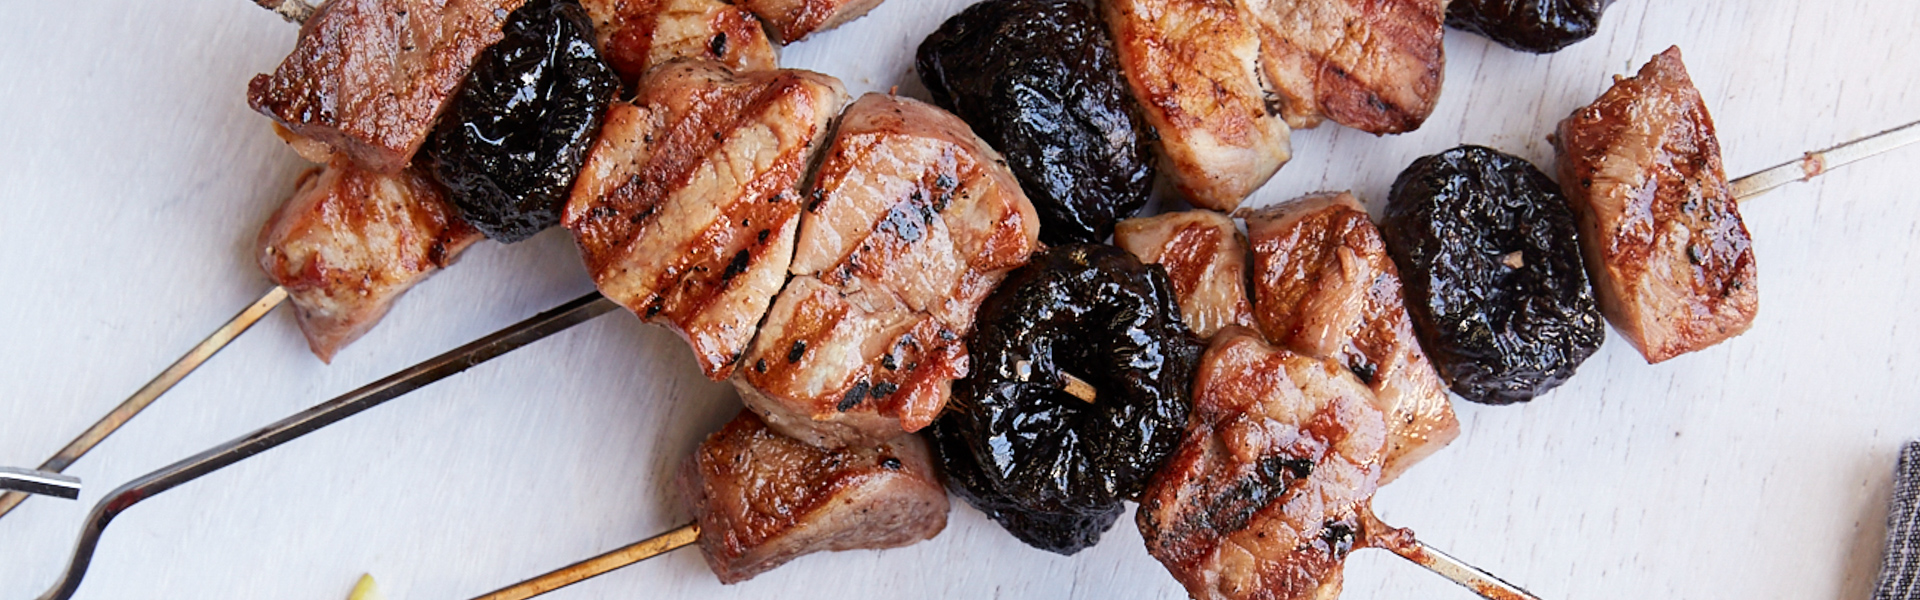 <p>When skewered between cubes of pork loin and grilled as Italian-style kebabs, prunes become addictively caramelized. Complementing the pork and prunes is a simple sauce made of walnuts, garlic, and dried cherries. Served with arugula, the dish is nutty, tangy, and naturally sweet answer to backyard barbecues.</p>